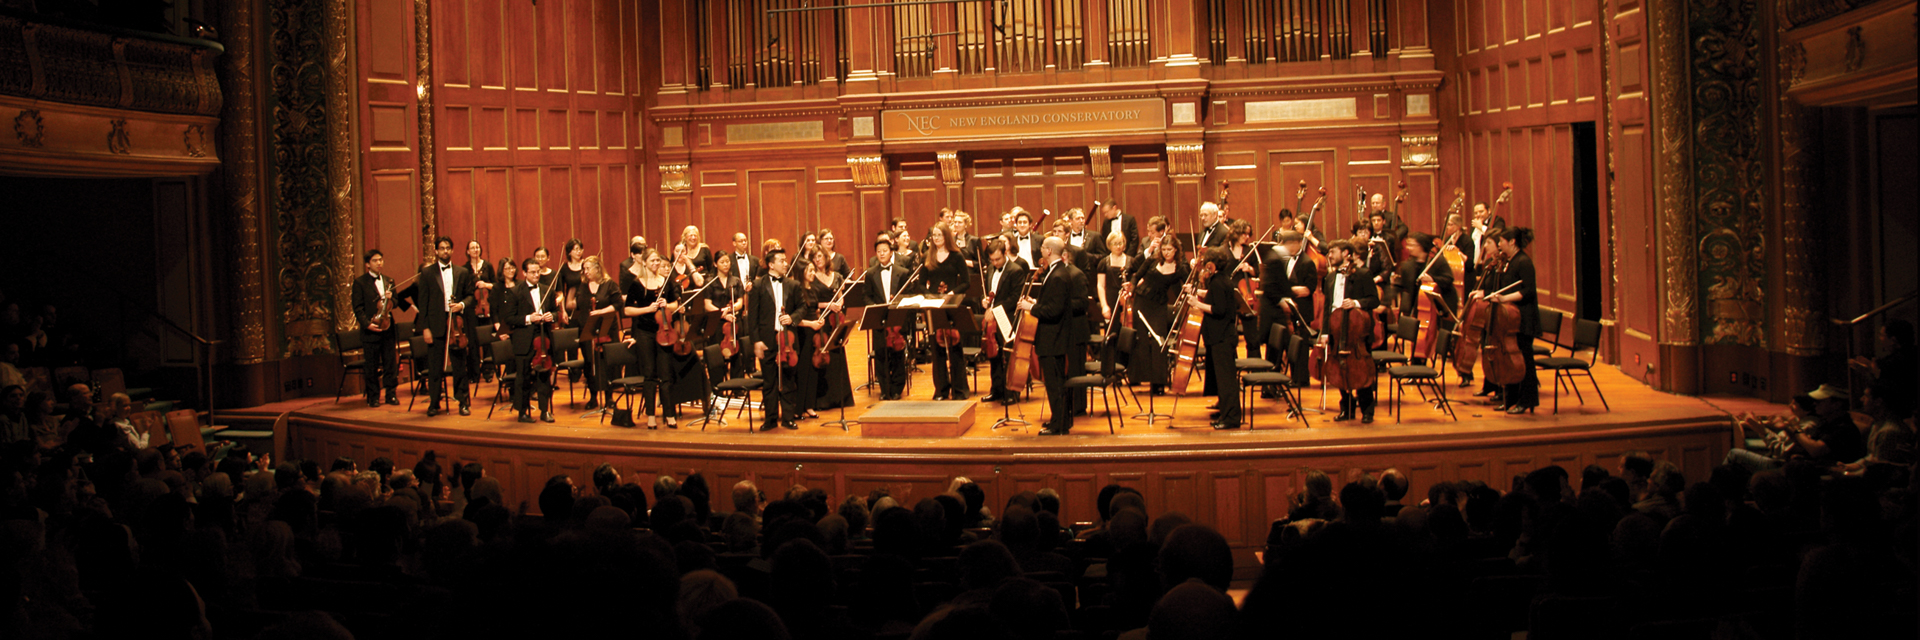 Longwood Symphony Orchestra during a performance